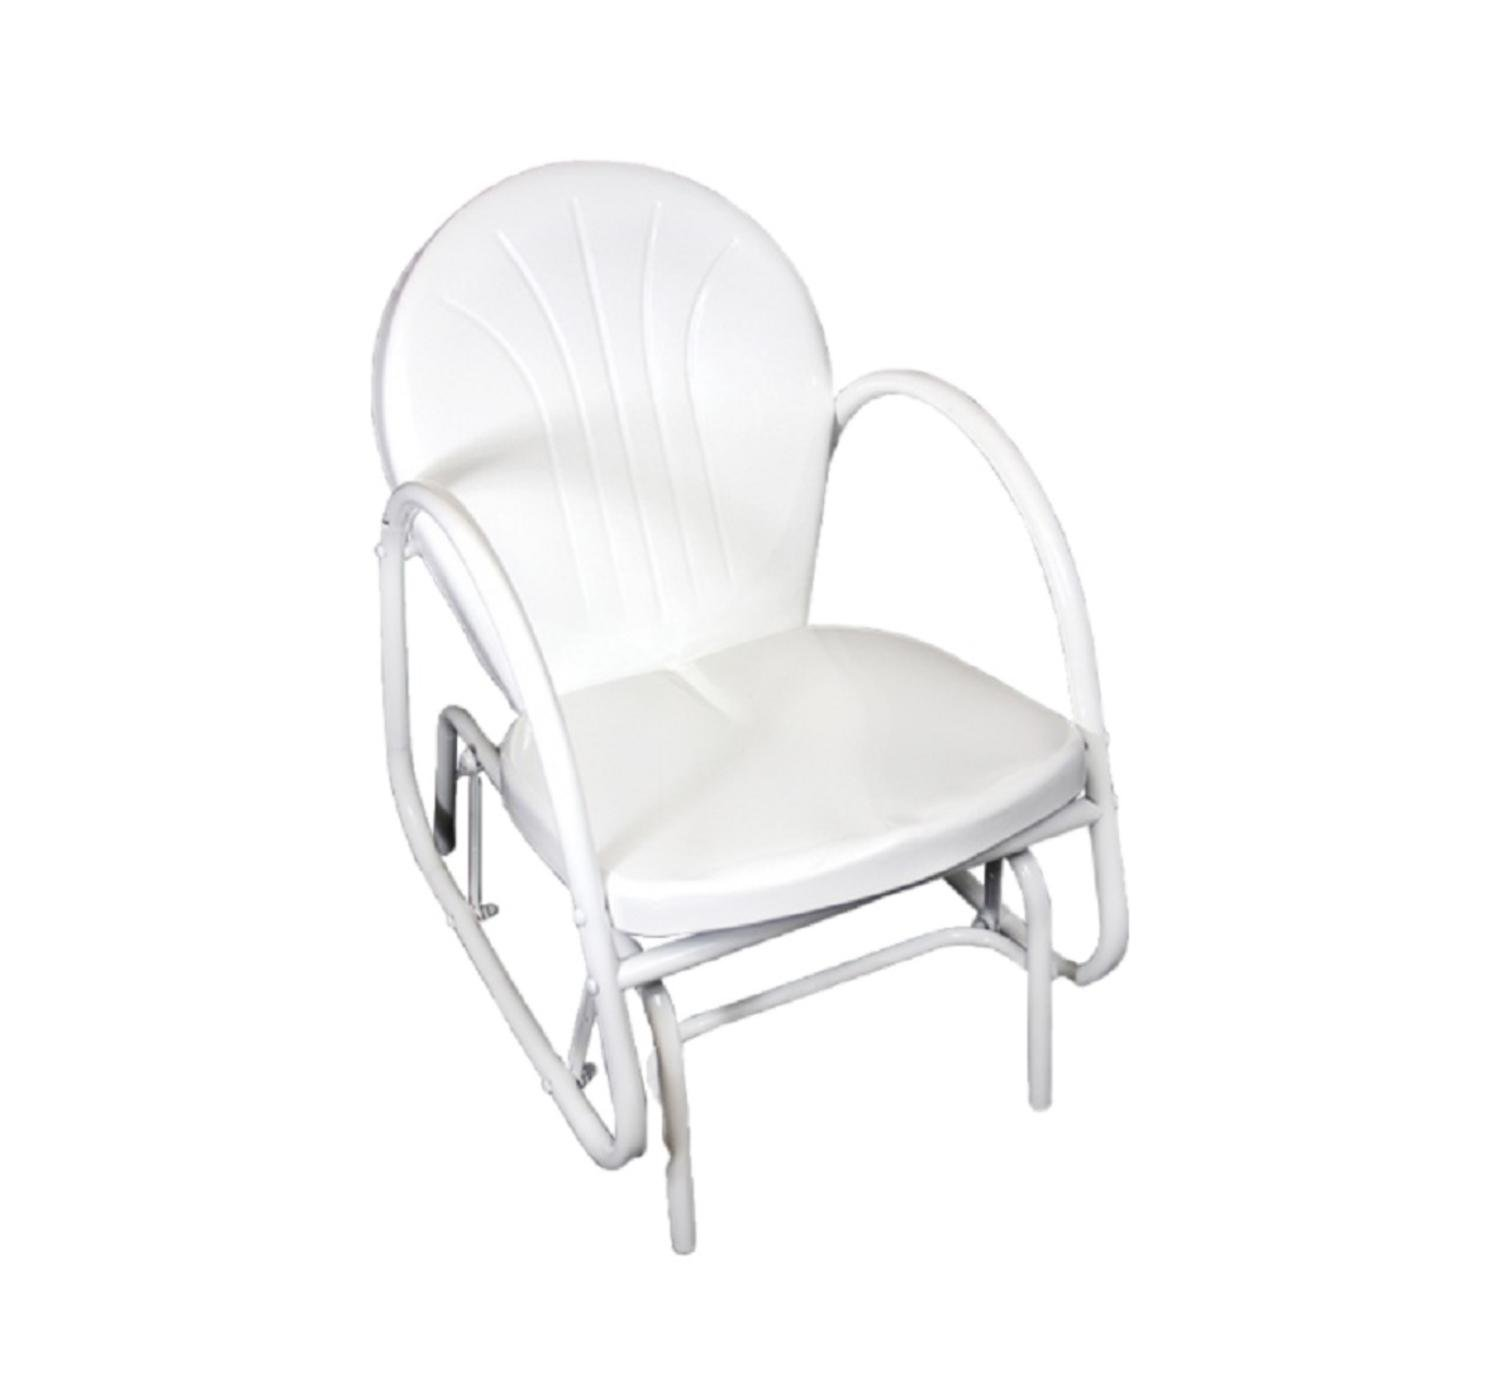 Northlight White Retro Metal Tulip Outdoor Single Glider